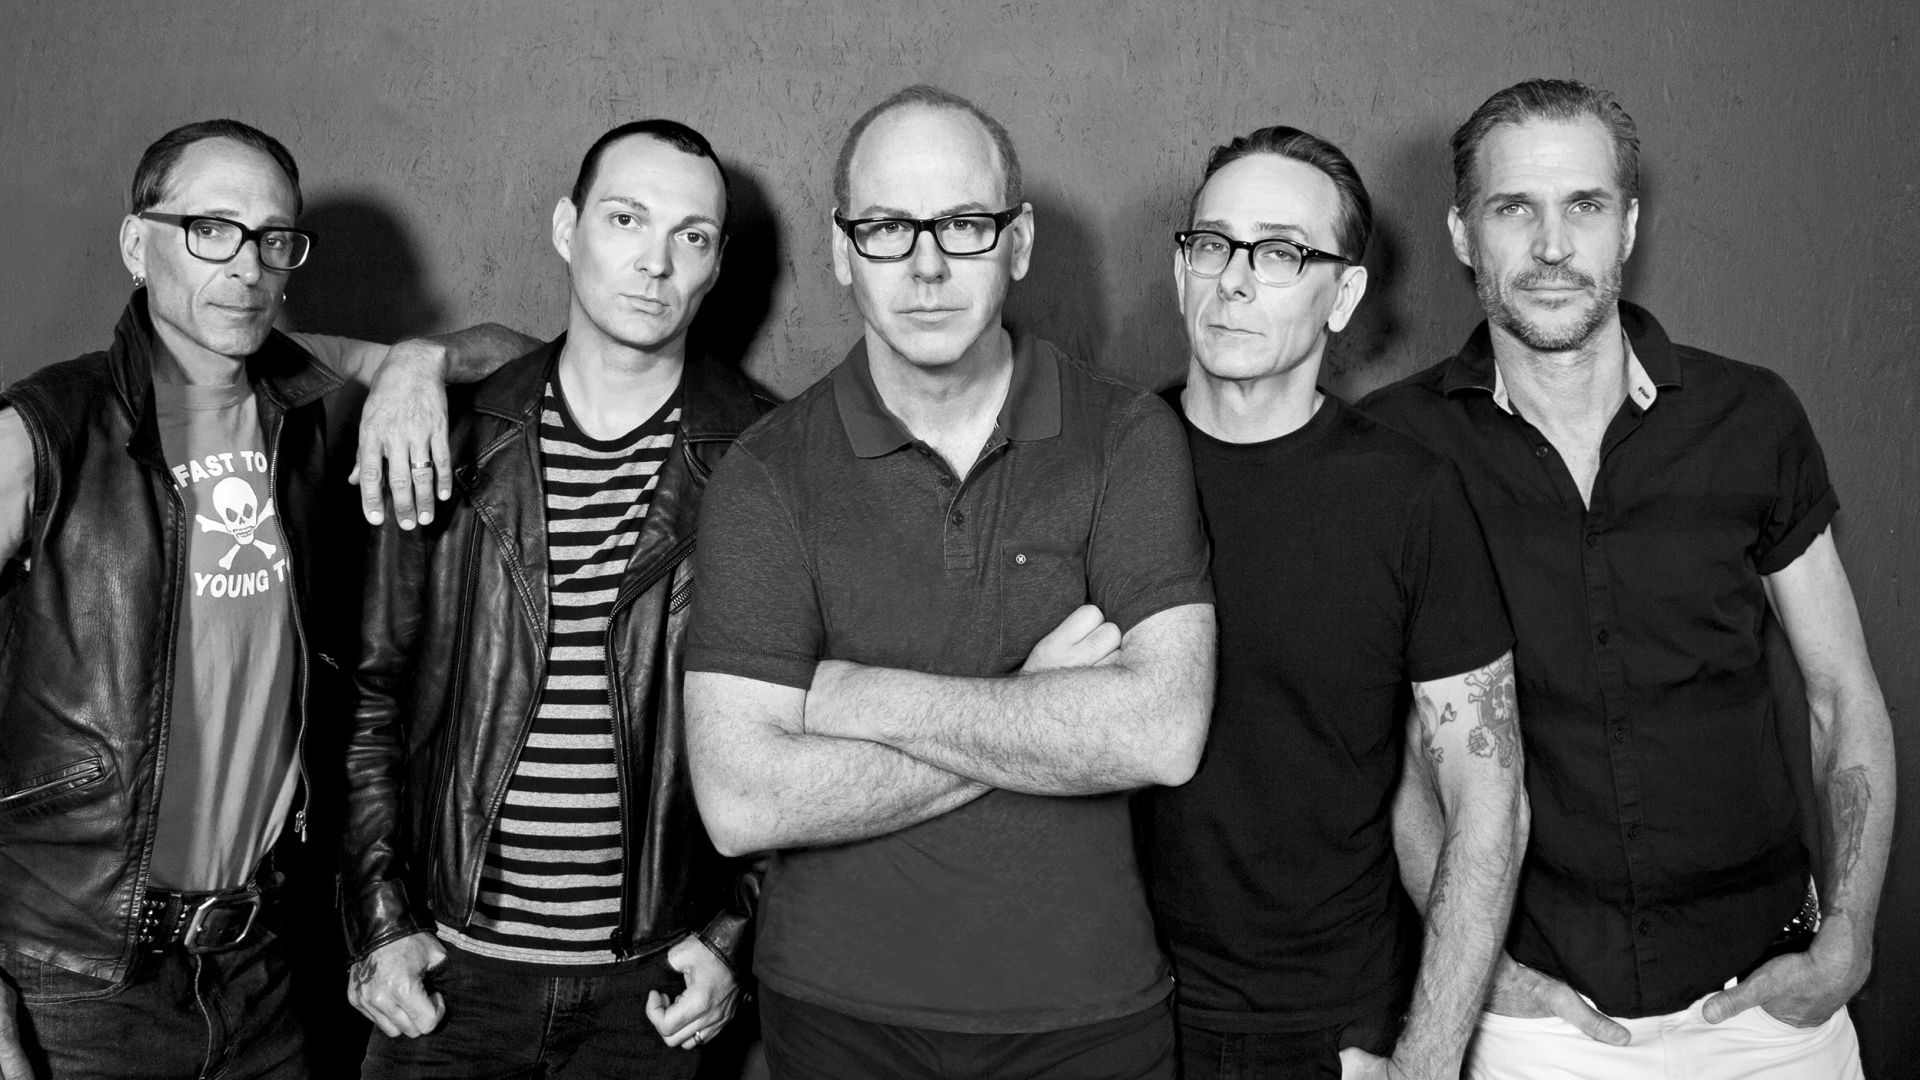 bad religion wallpaper iphone: Bad Religion Wallpapers, Pictures, Images